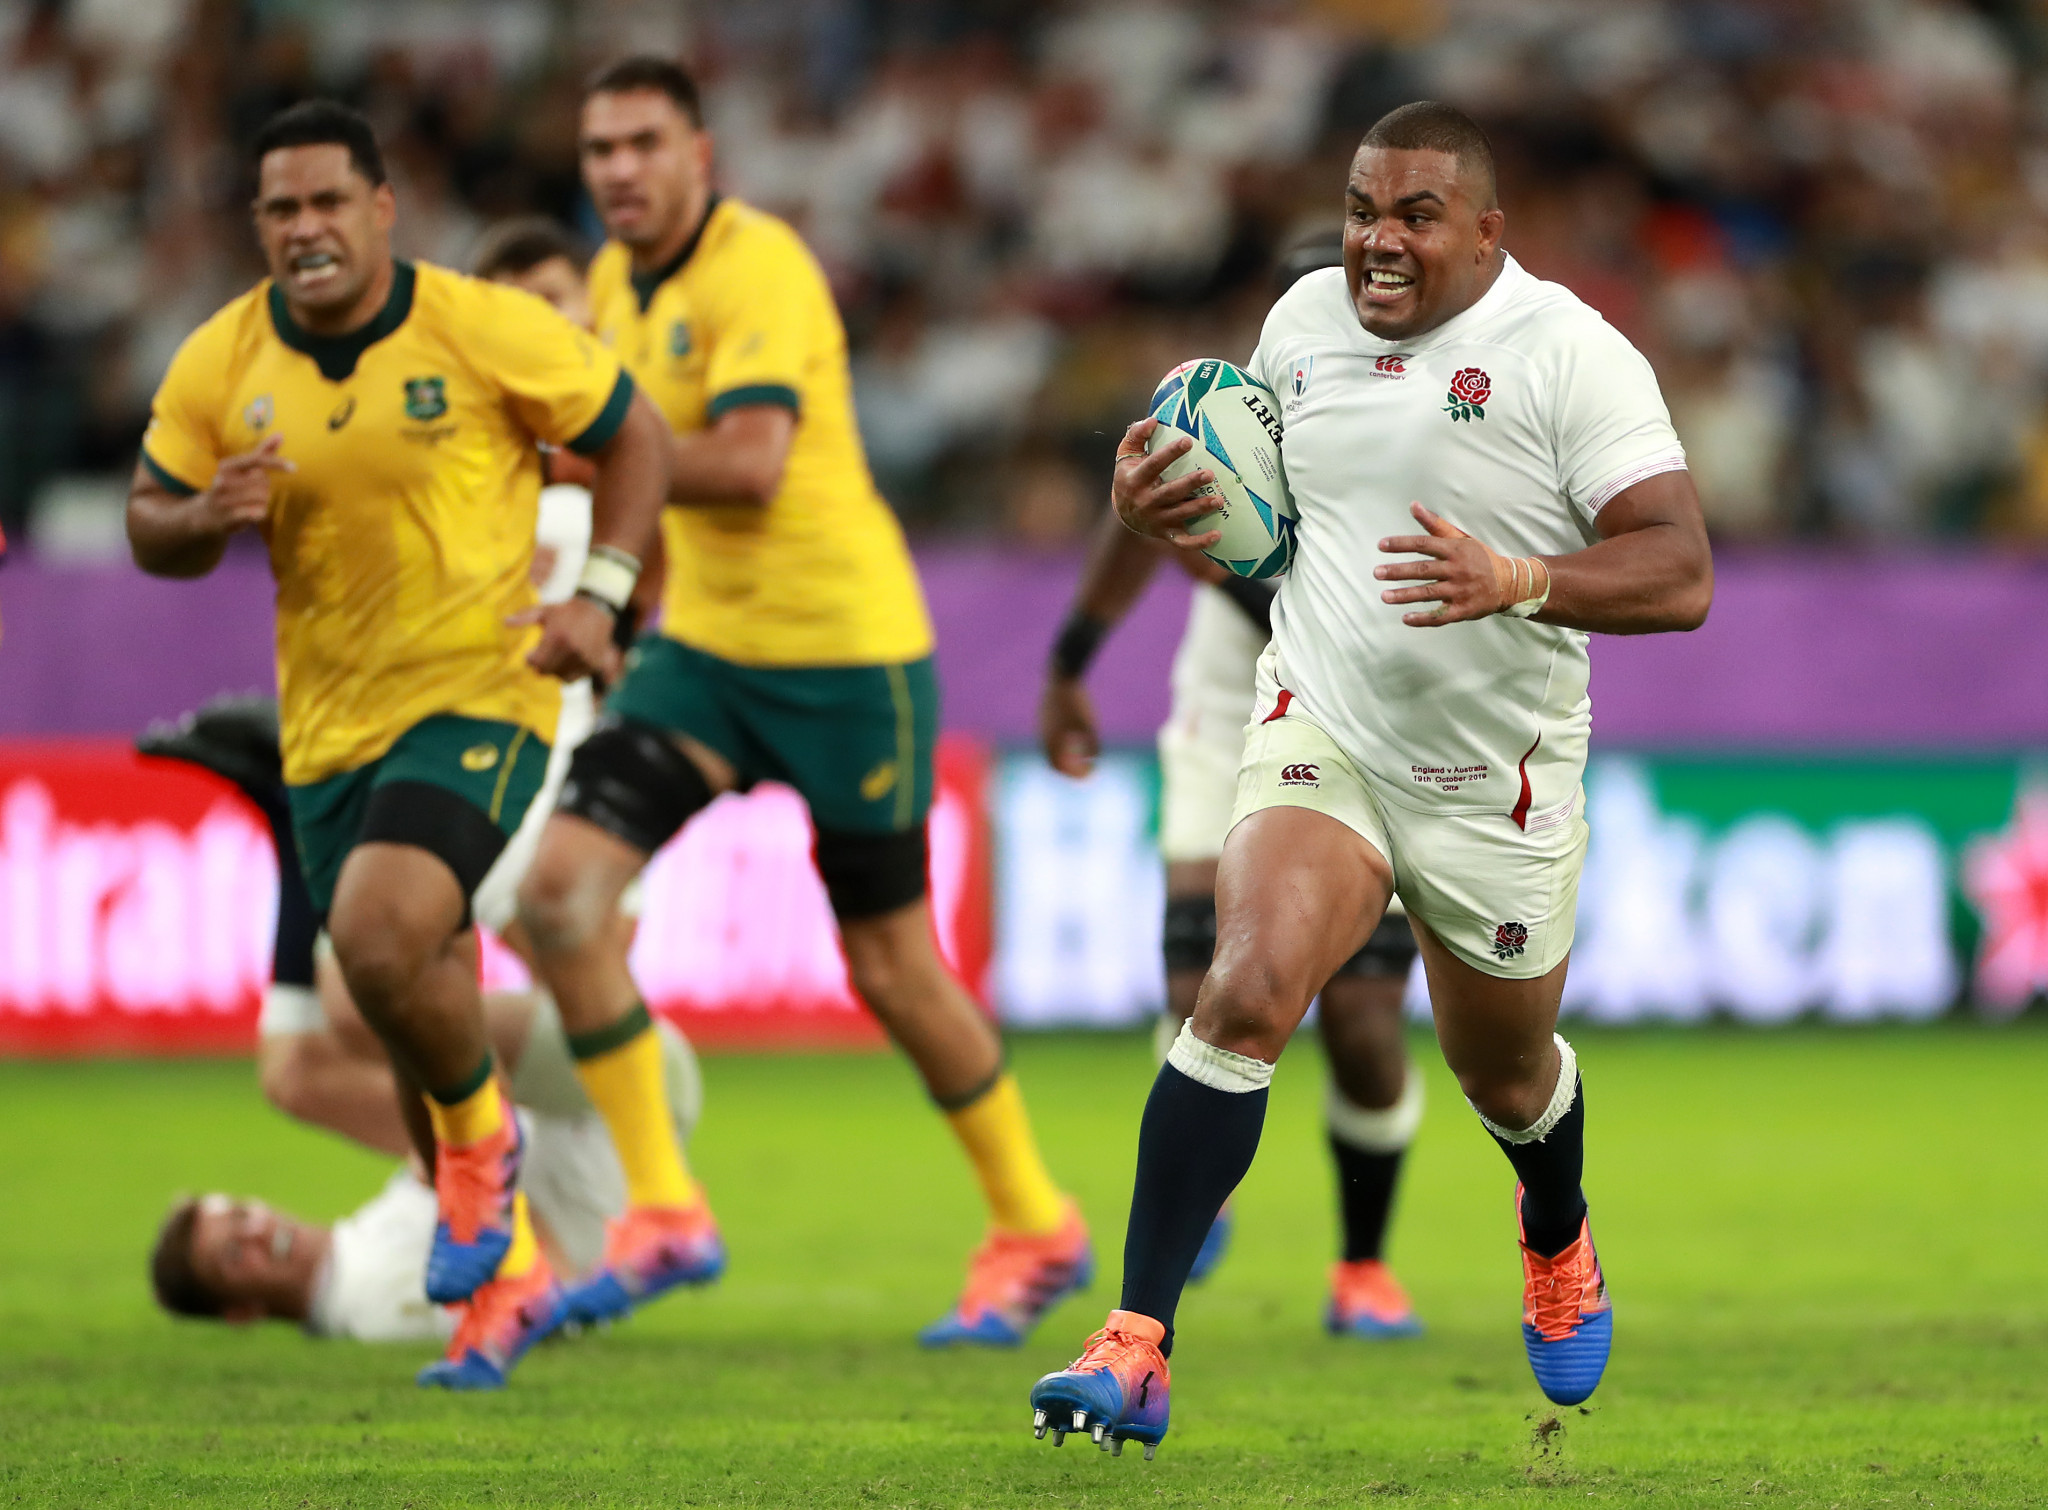 Kyle Sinckler was an unlikely try scorer for England ©Getty Images